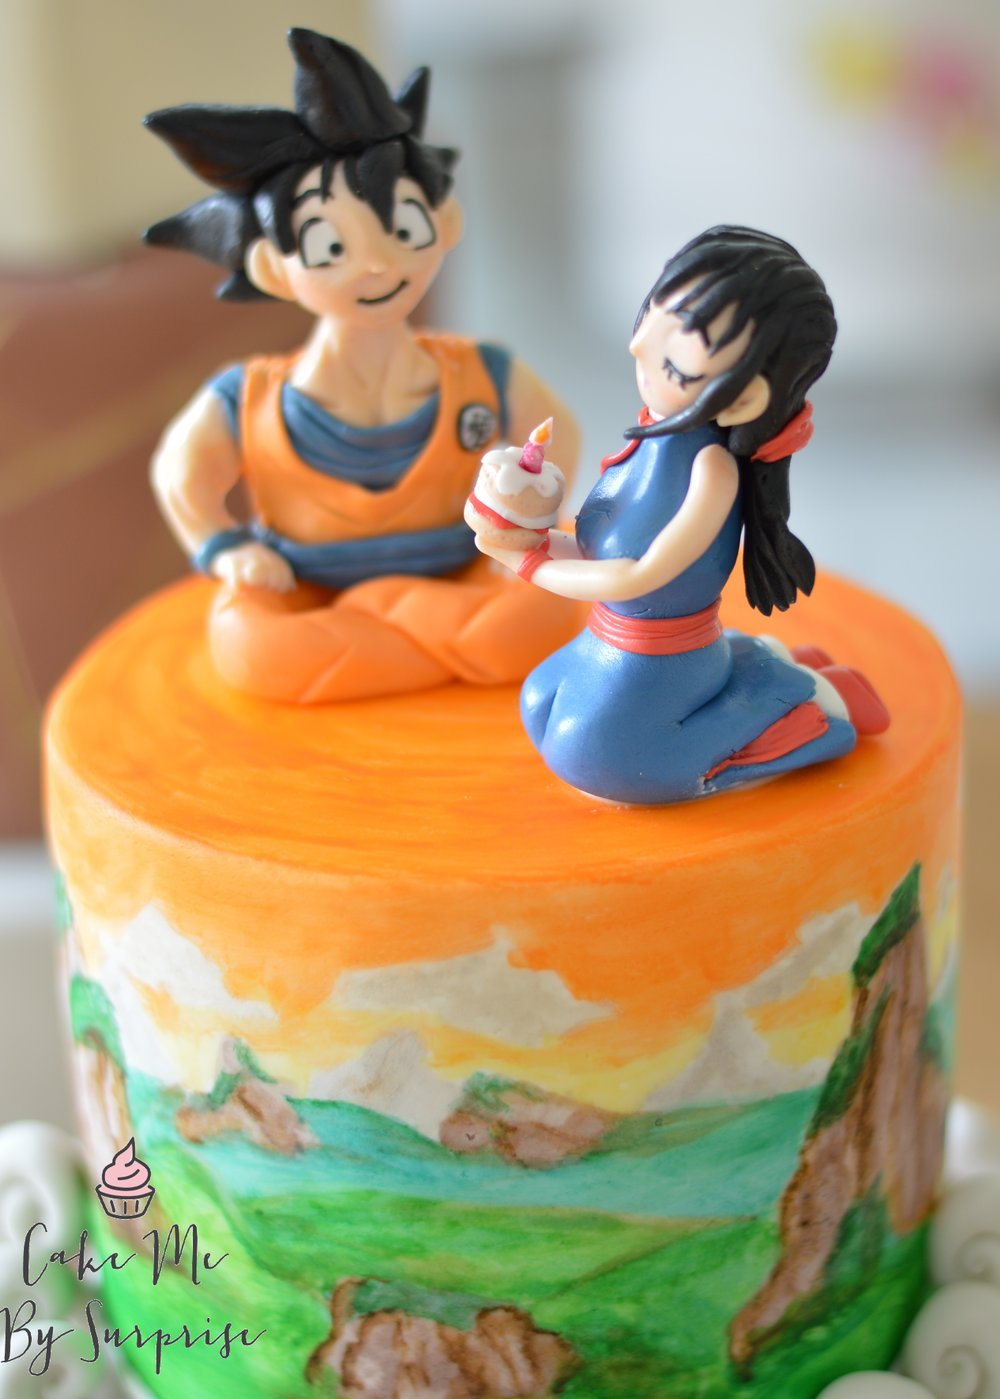 Goku Dragon Ball Birthday Cake.jpg